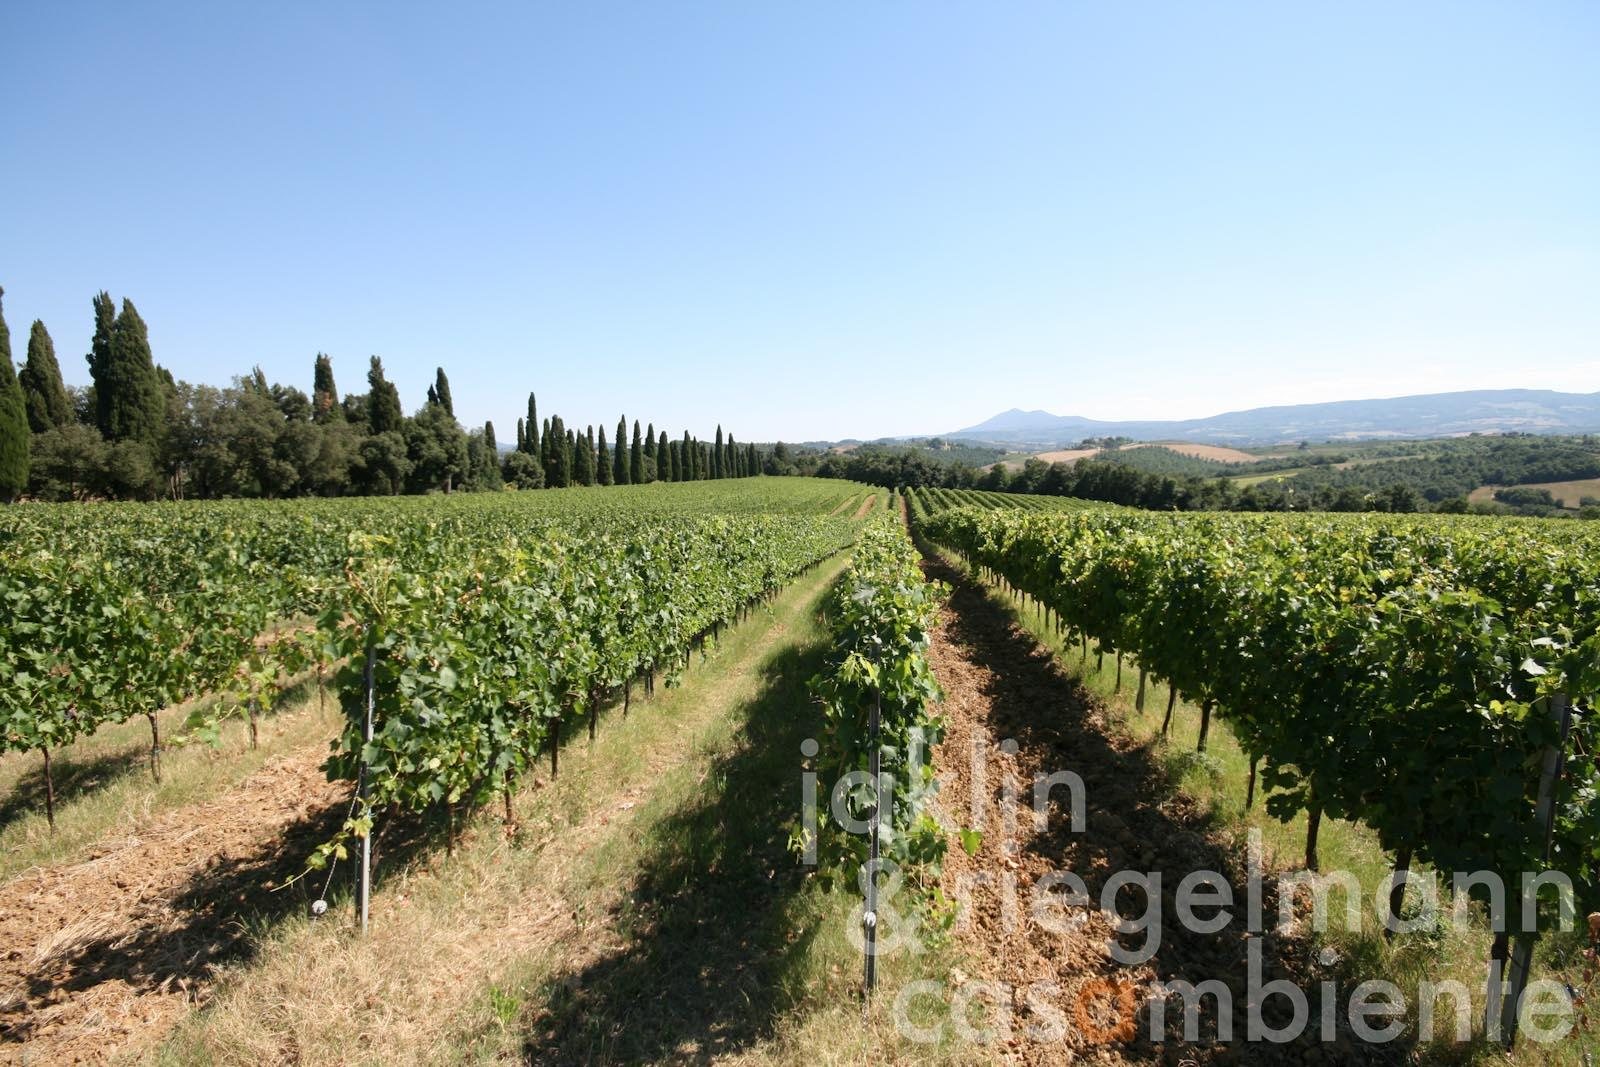 Prestigious Tuscan winery for sale Vino Nobile di Montepulciano DOCG